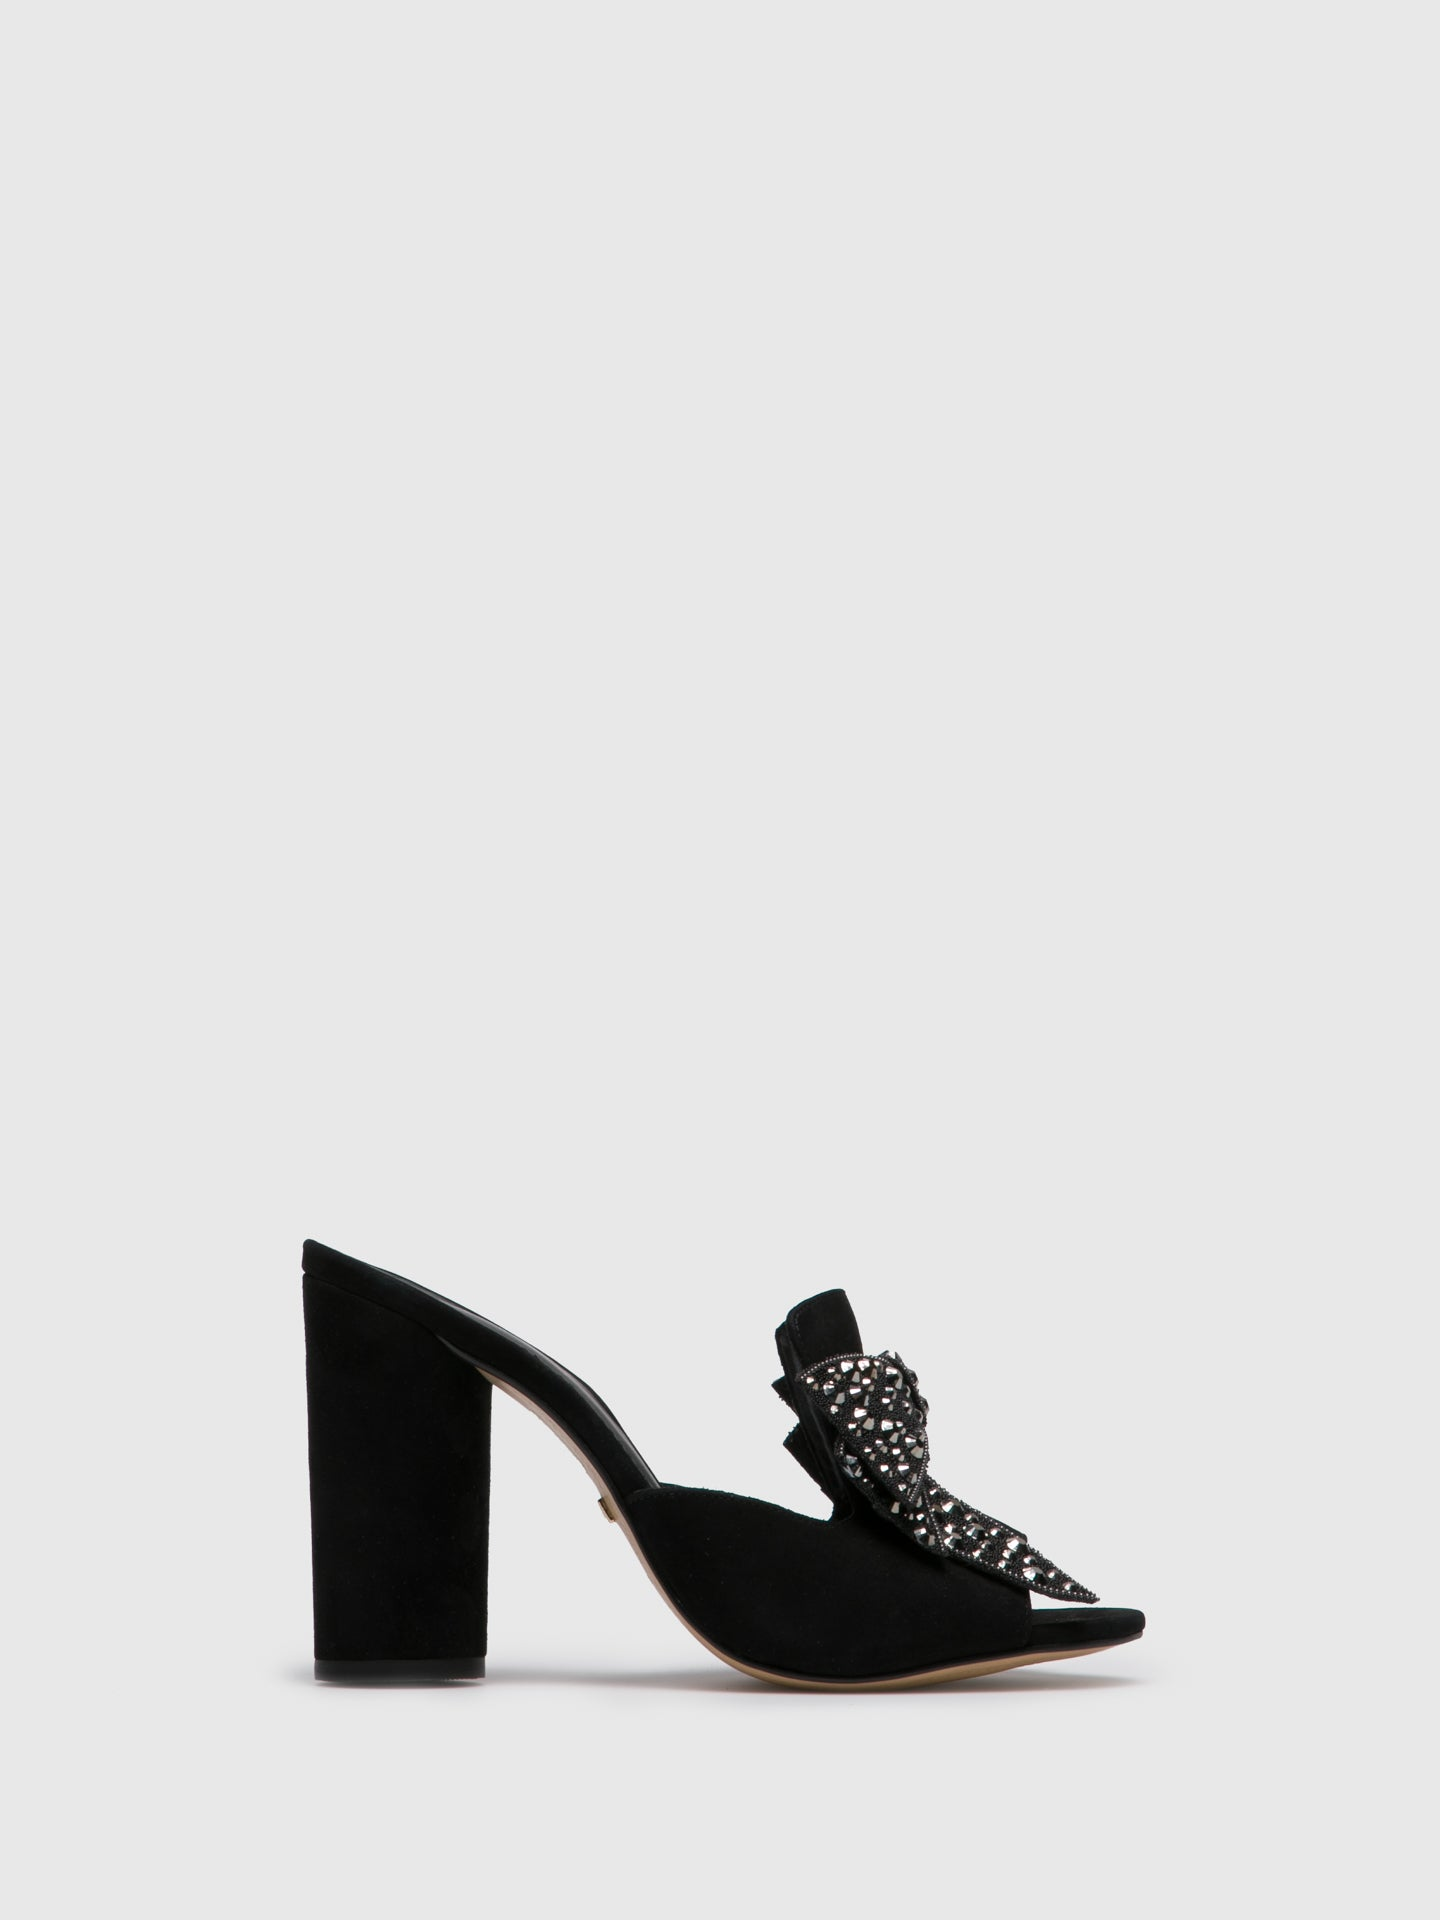 PARODI PASSION Black Appliqués Mules